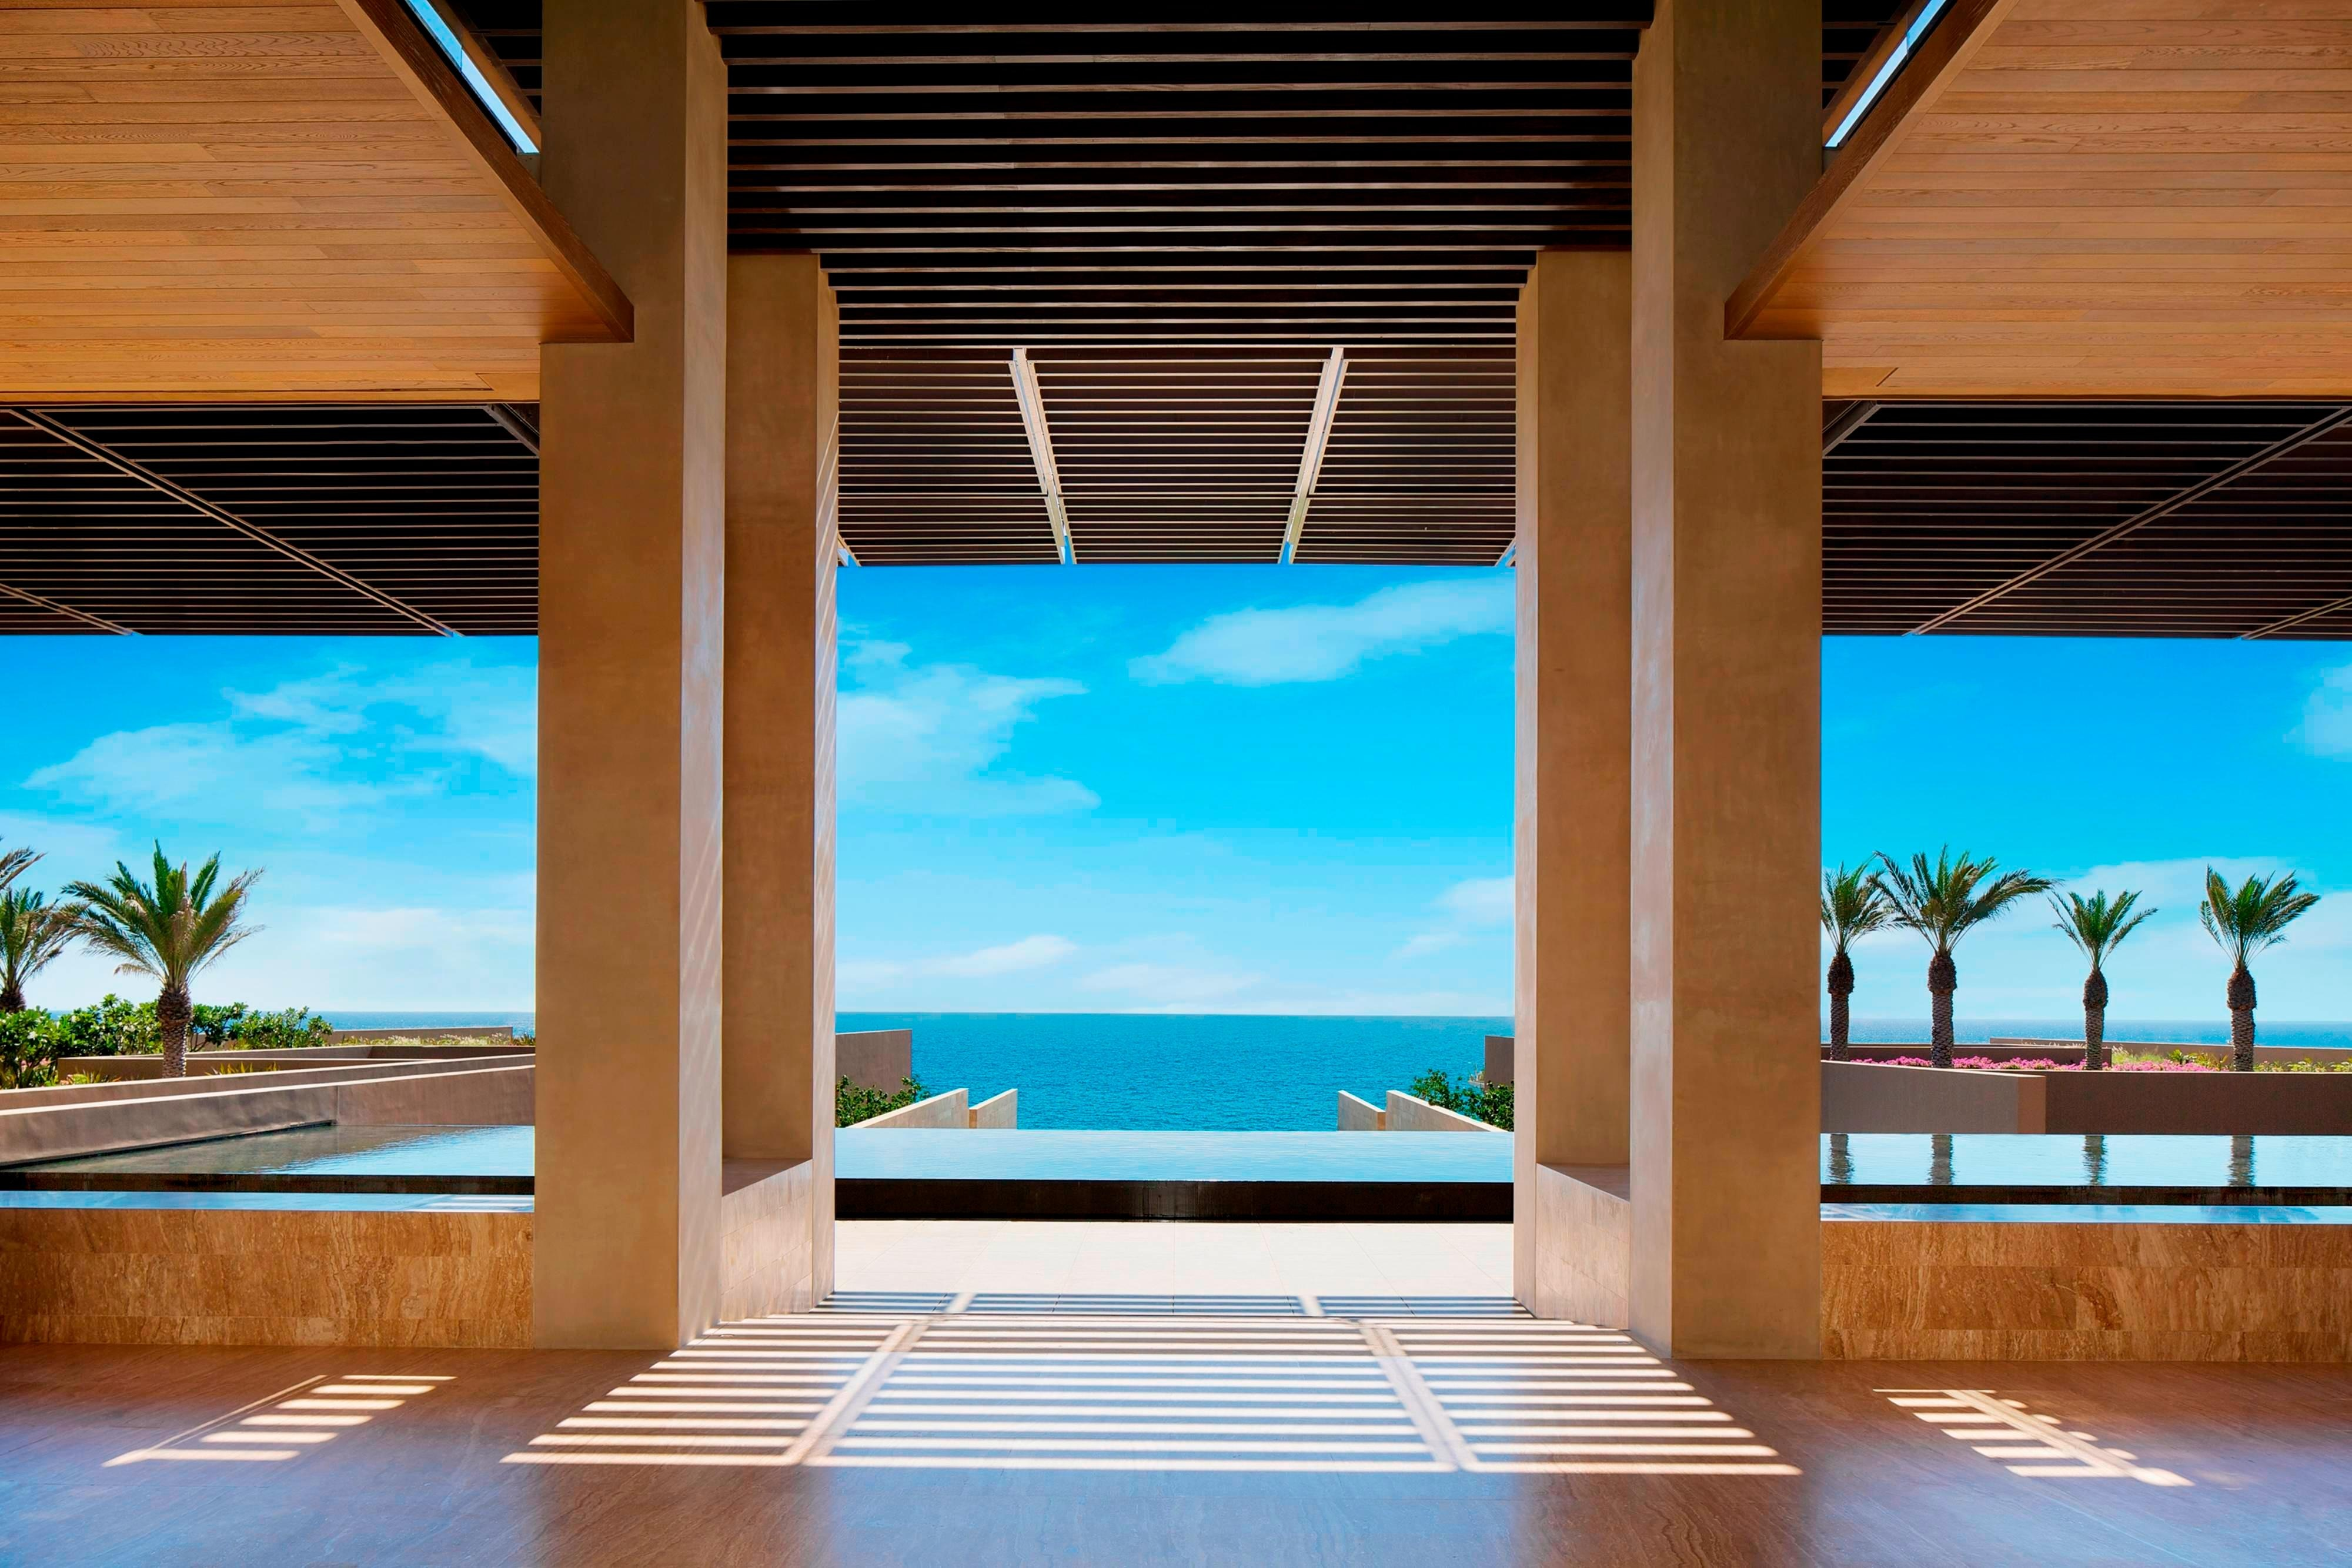 Detalles del lobby del JW Marriott Los Cabos Beach Resort & Spa